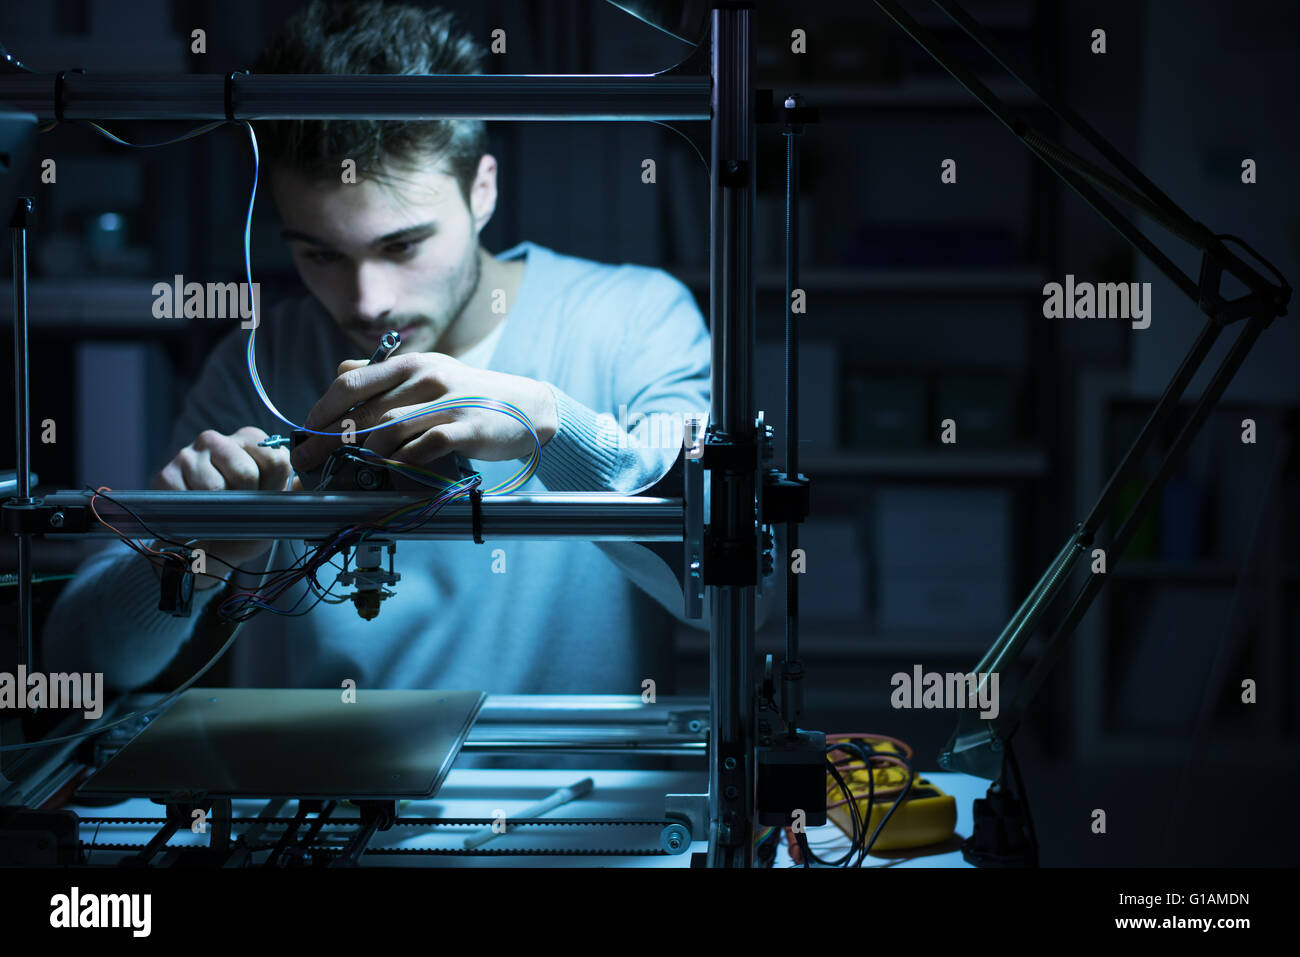 Young engineer working at night in the lab, he is adjusting a 3D printer's components, technology and engineering - Stock Image